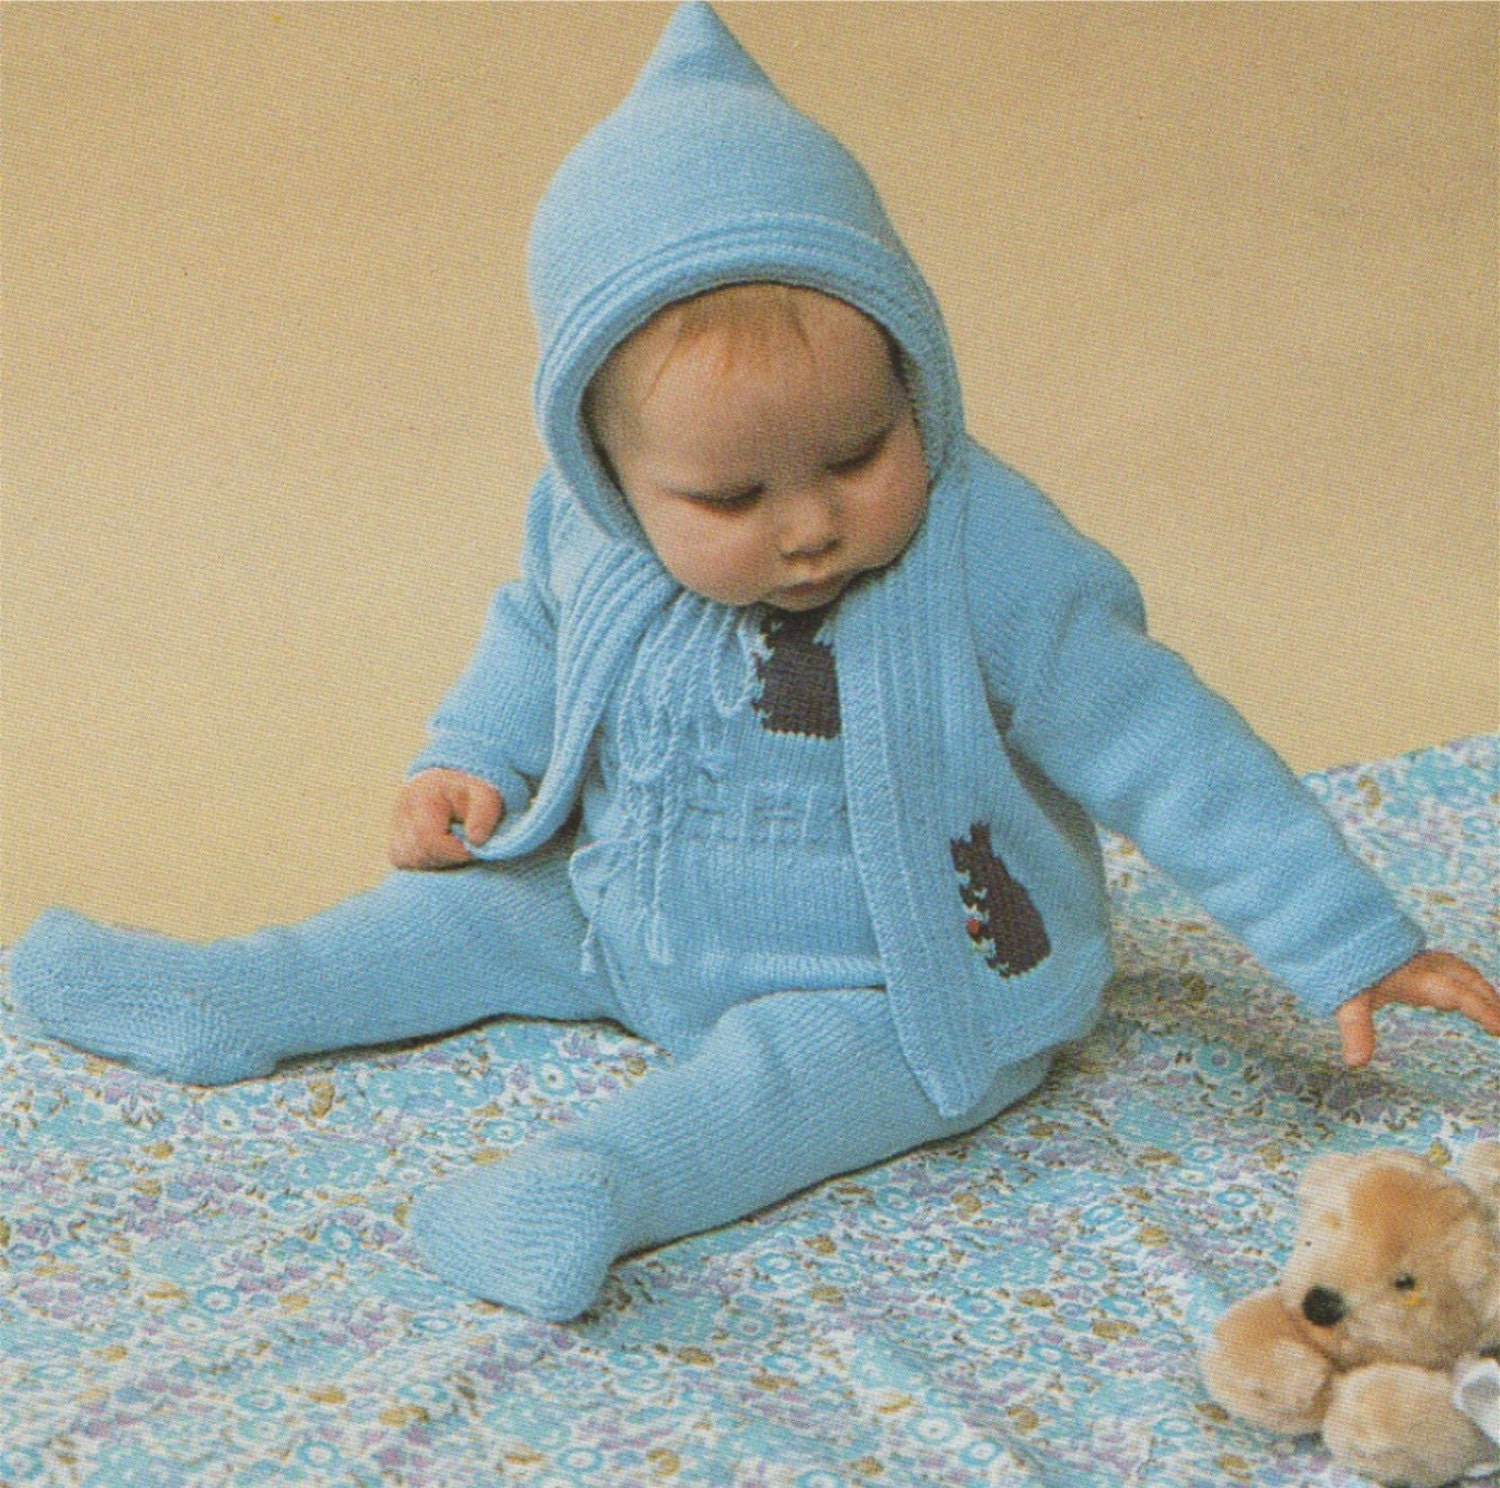 ab23b8377437 Babys All-in-one Suit and Hooded Jacket Knitting Pattern   Rabbit ...